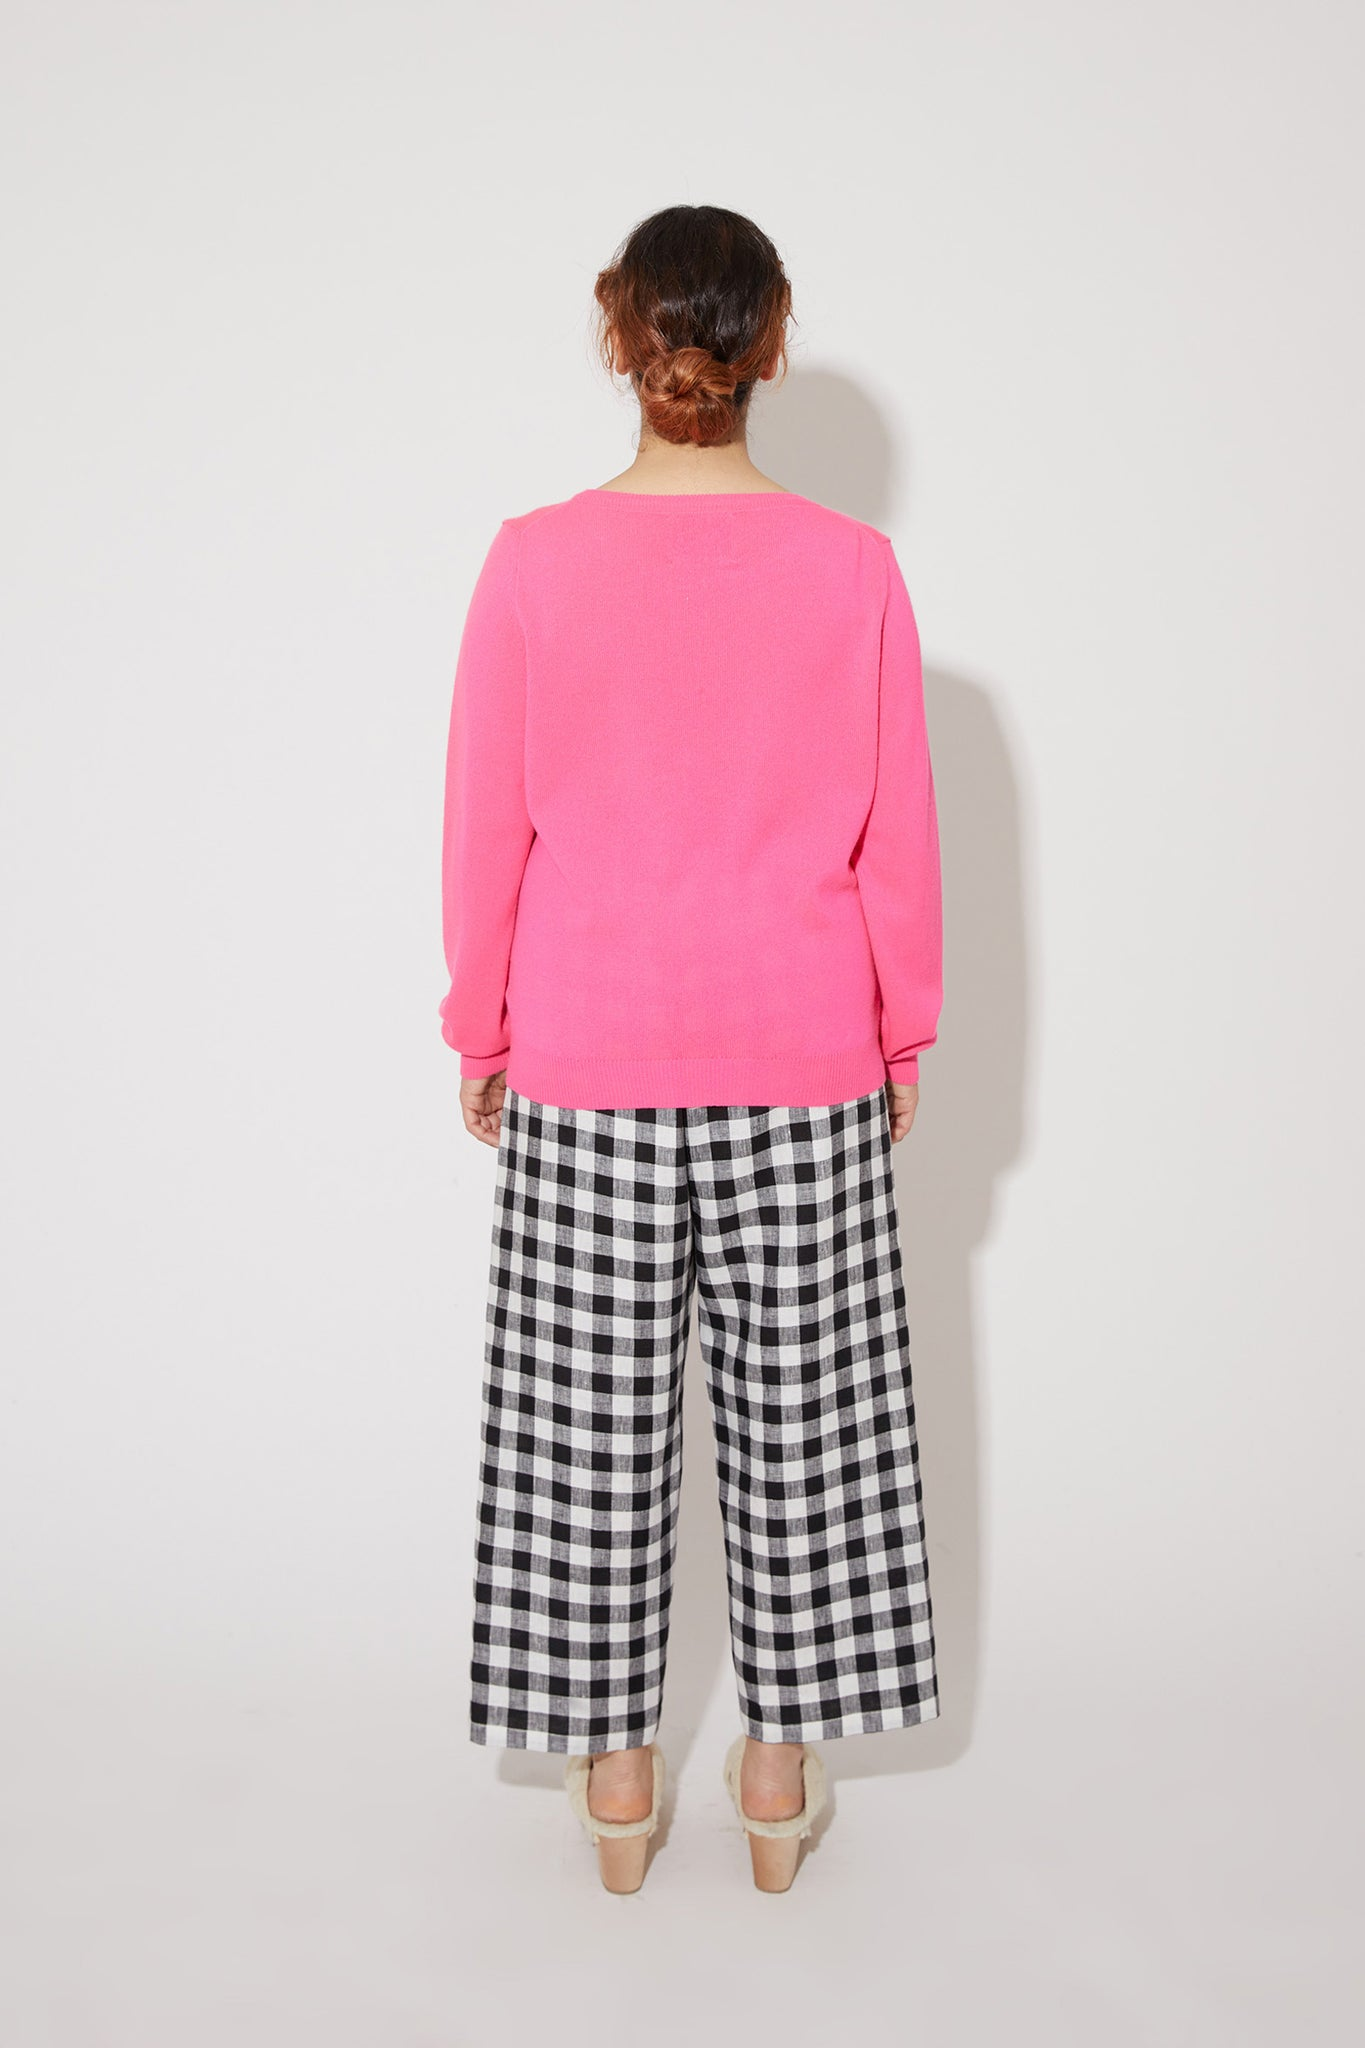 Laine cashmere sweater in vivid pink